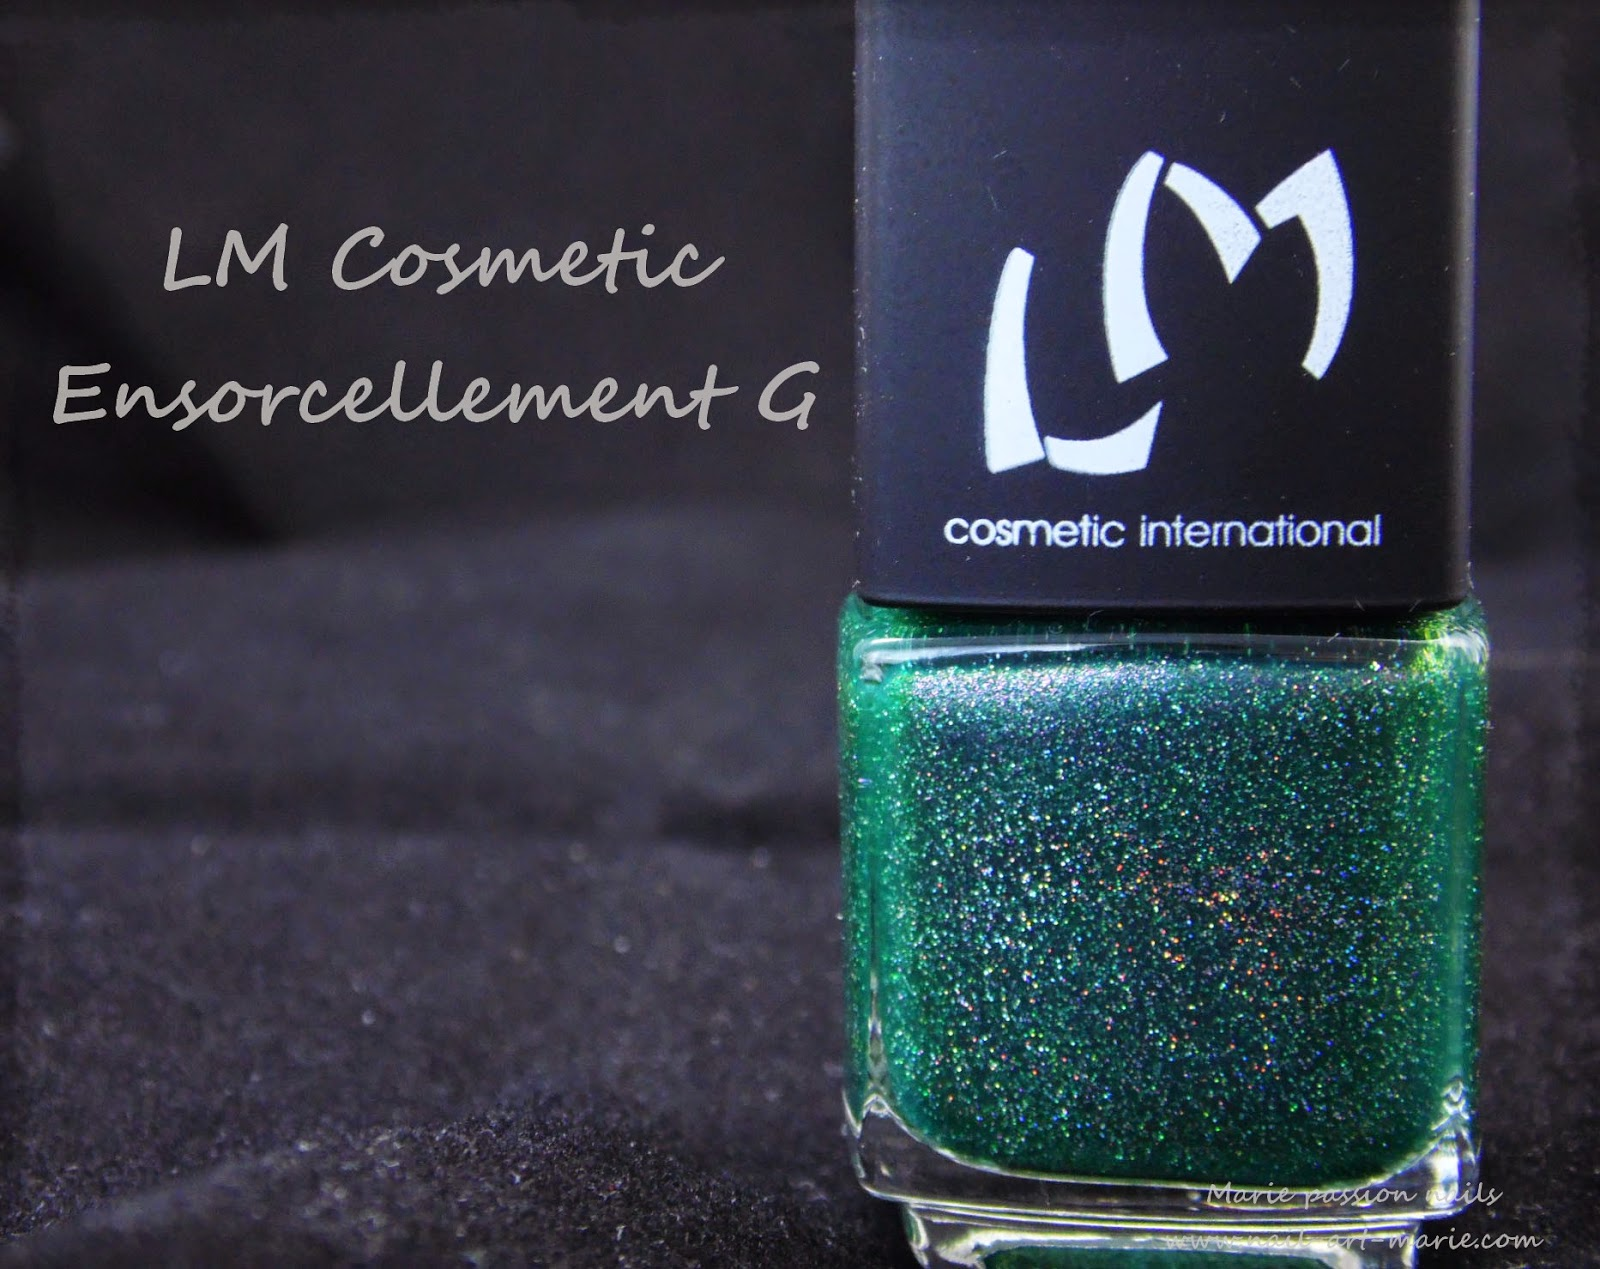 LM Cosmetic Ensorcellement (G)1